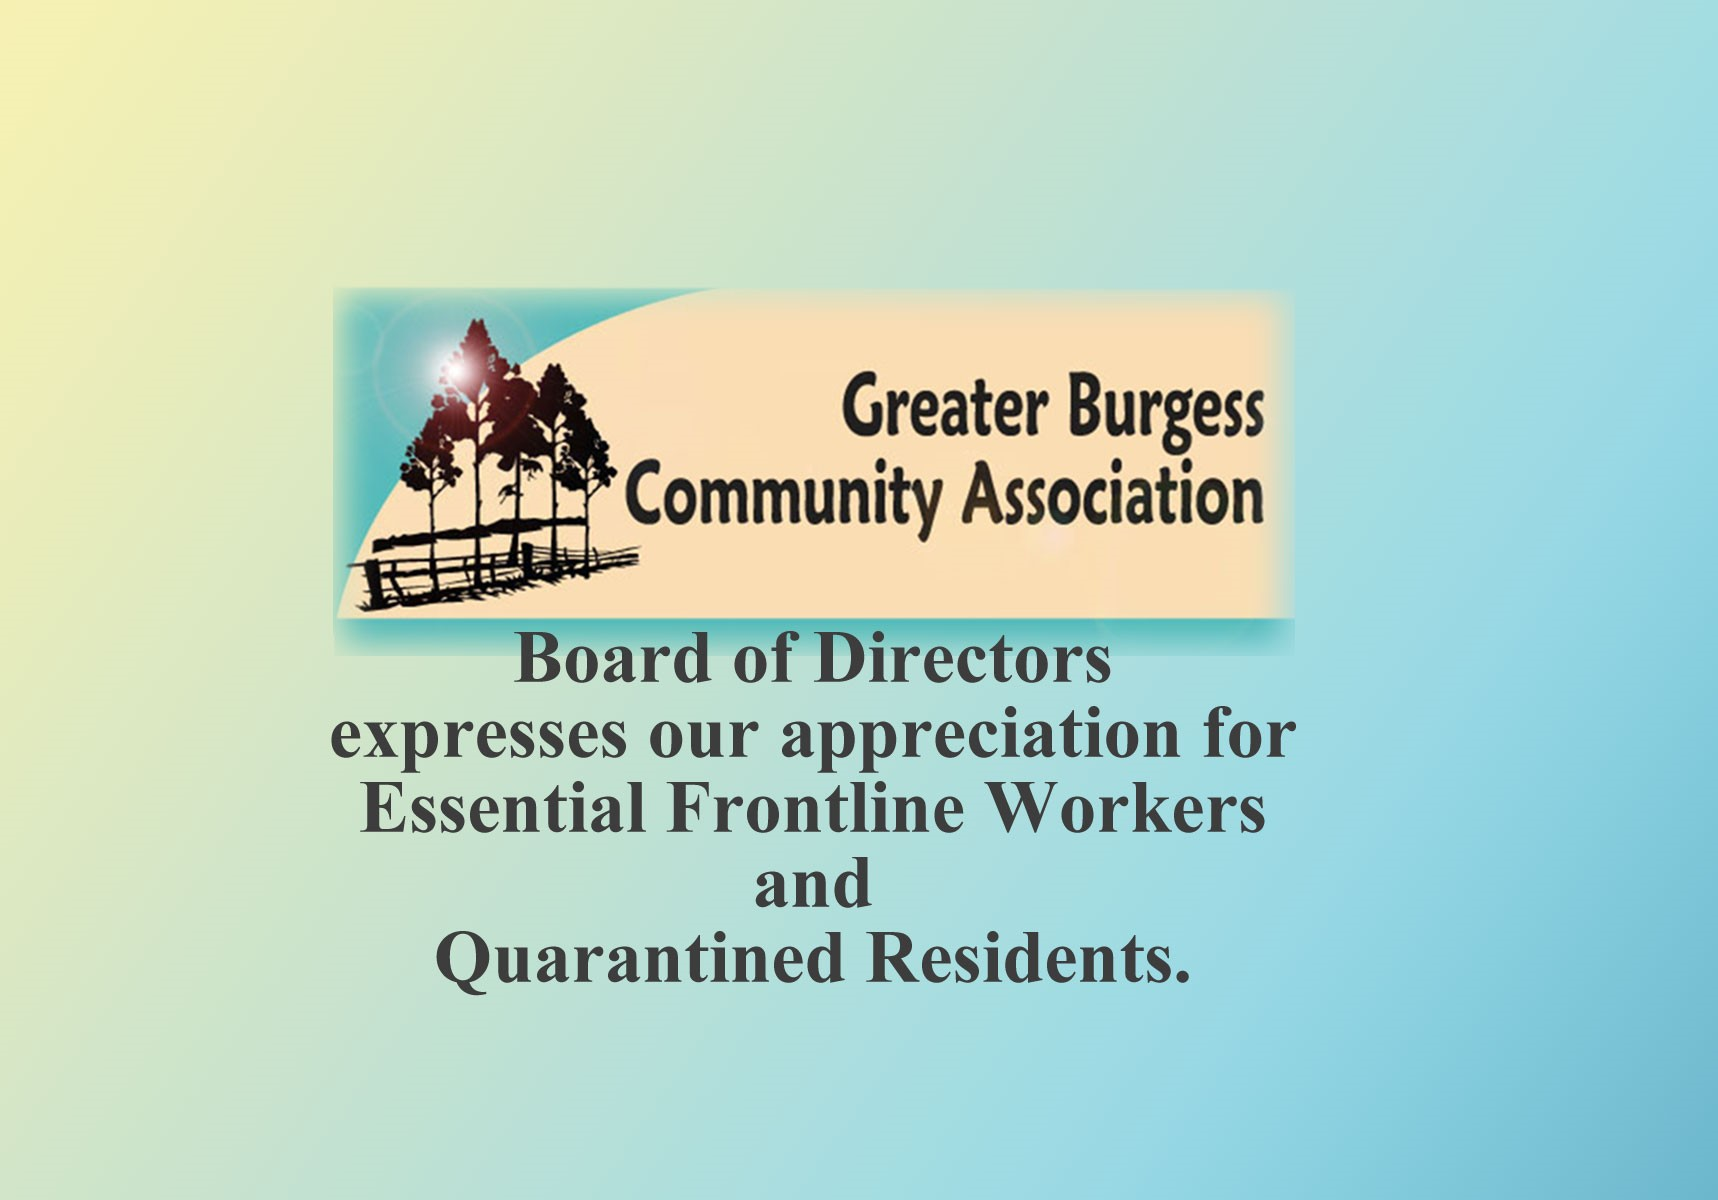 Board of Directors expresses our appreciation